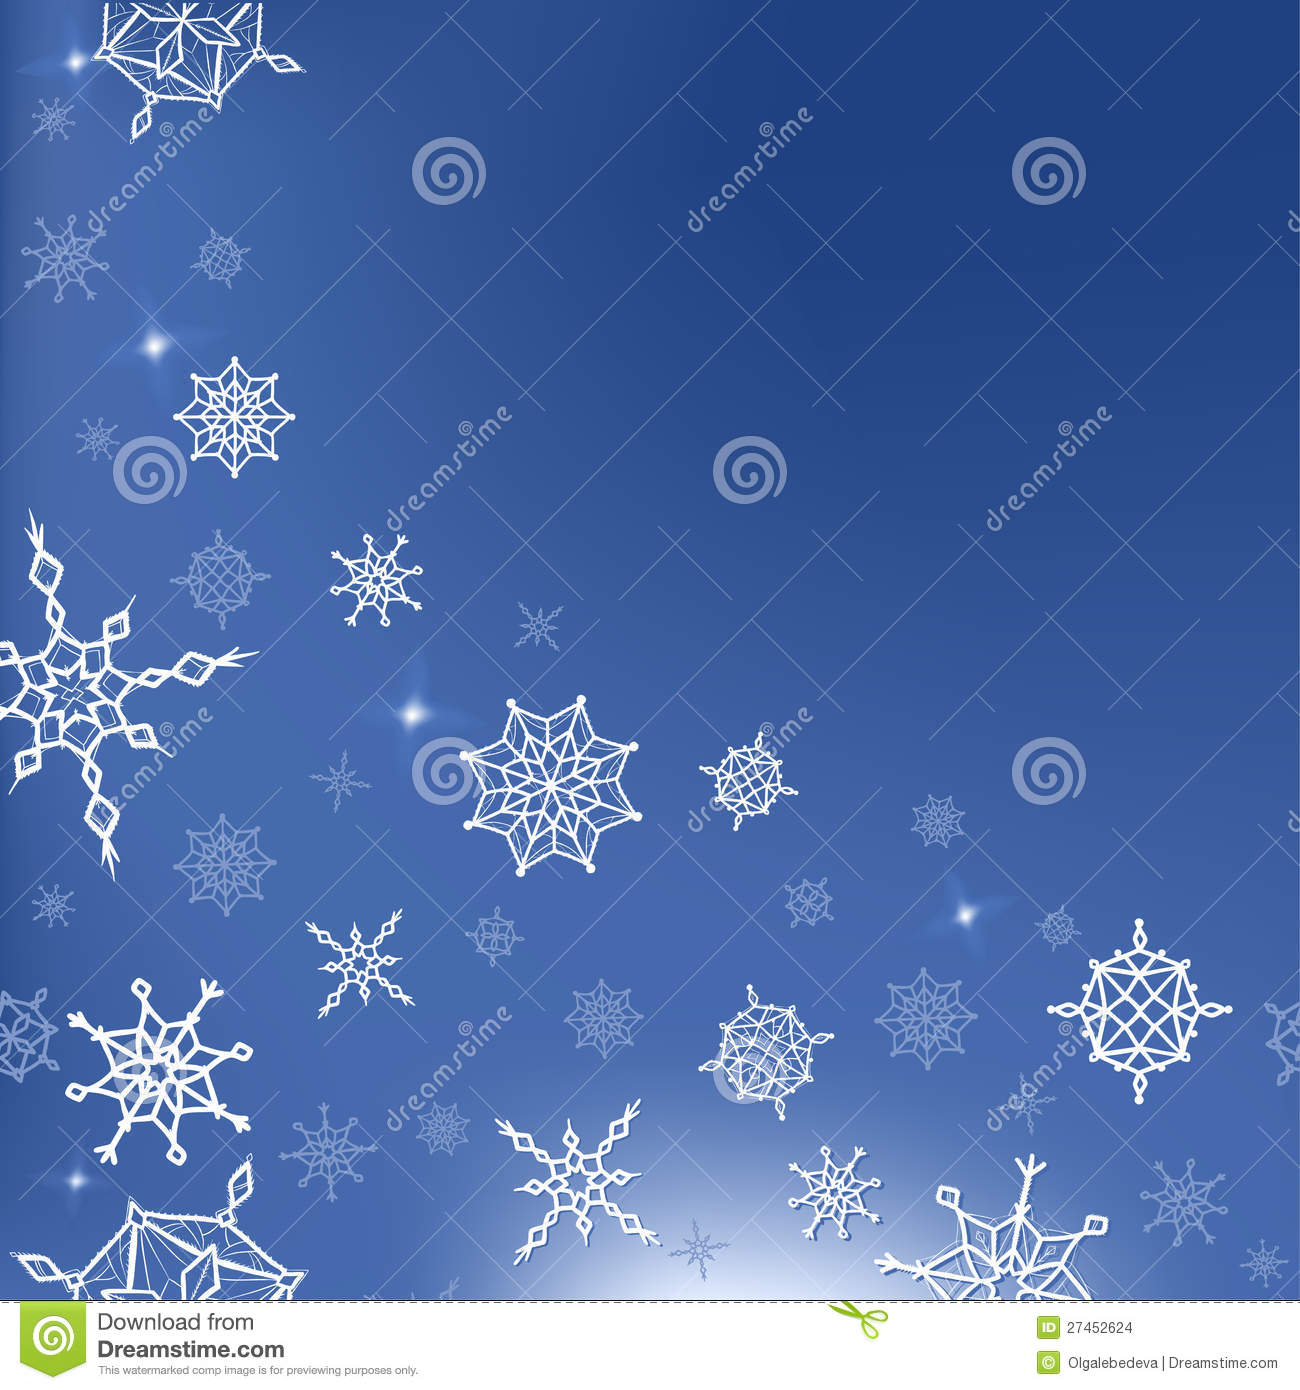 Winter Christmas New Year Template For Card Stock Images   Image 0unvrue5